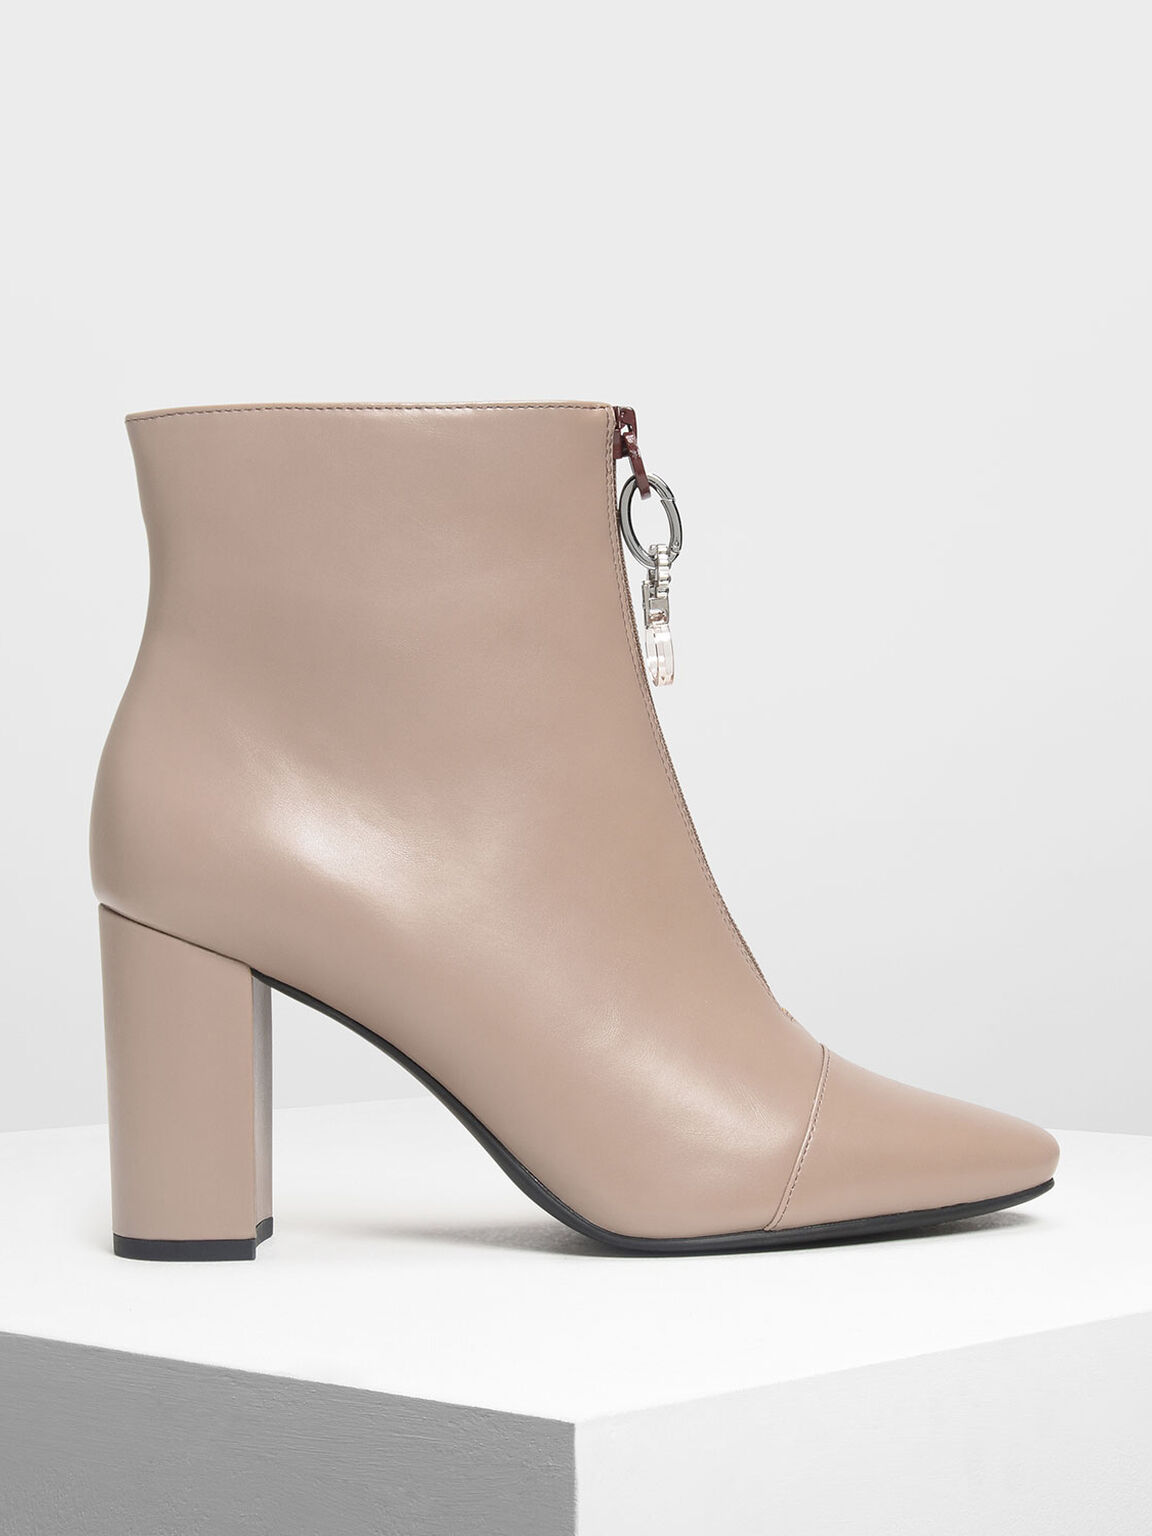 Zipper Calf Boots, Taupe, hi-res